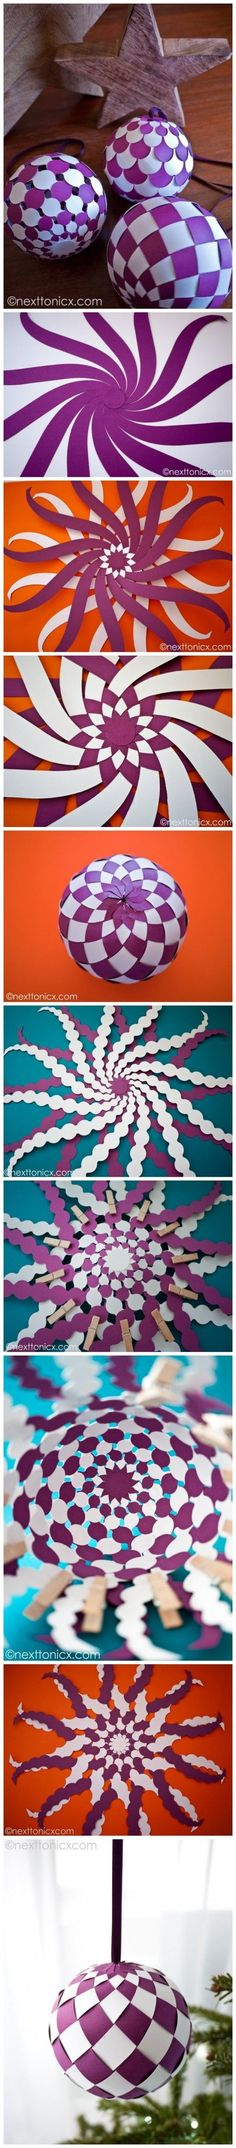 Ideas for diy paper ornaments origami ball Origami And Kirigami, Origami Paper, Diy Paper, Paper Art, Paper Crafts, Origami Ball, Oragami, Diy Origami, Crafts To Do